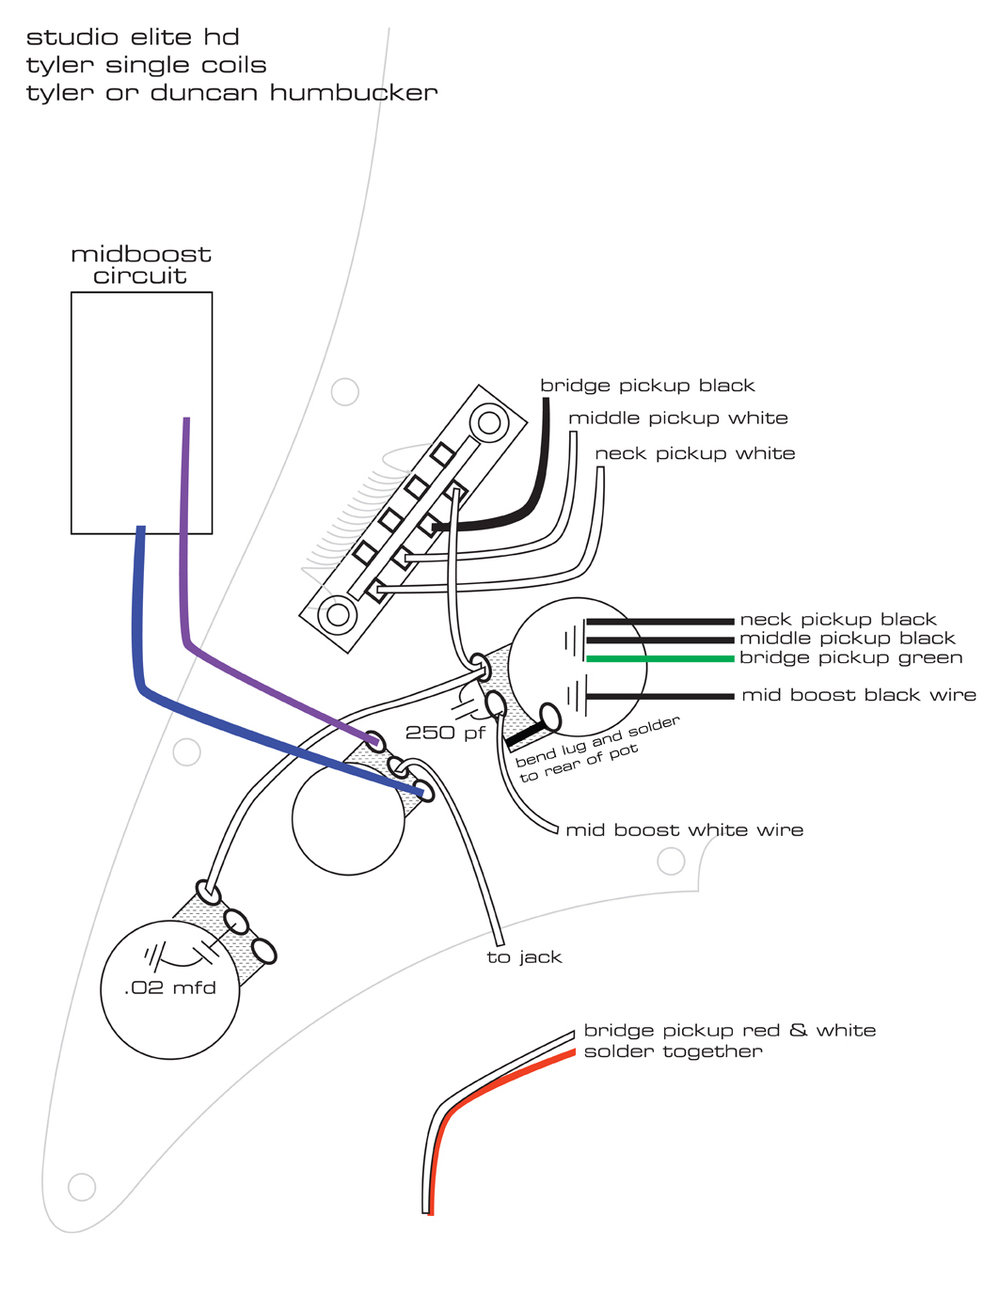 Harley Davidson Wiring Harness Diagram Hd Free For You Pickguard Diagrams James Tyler Guitars Rh Tylerguitars Com Sportster Dummies